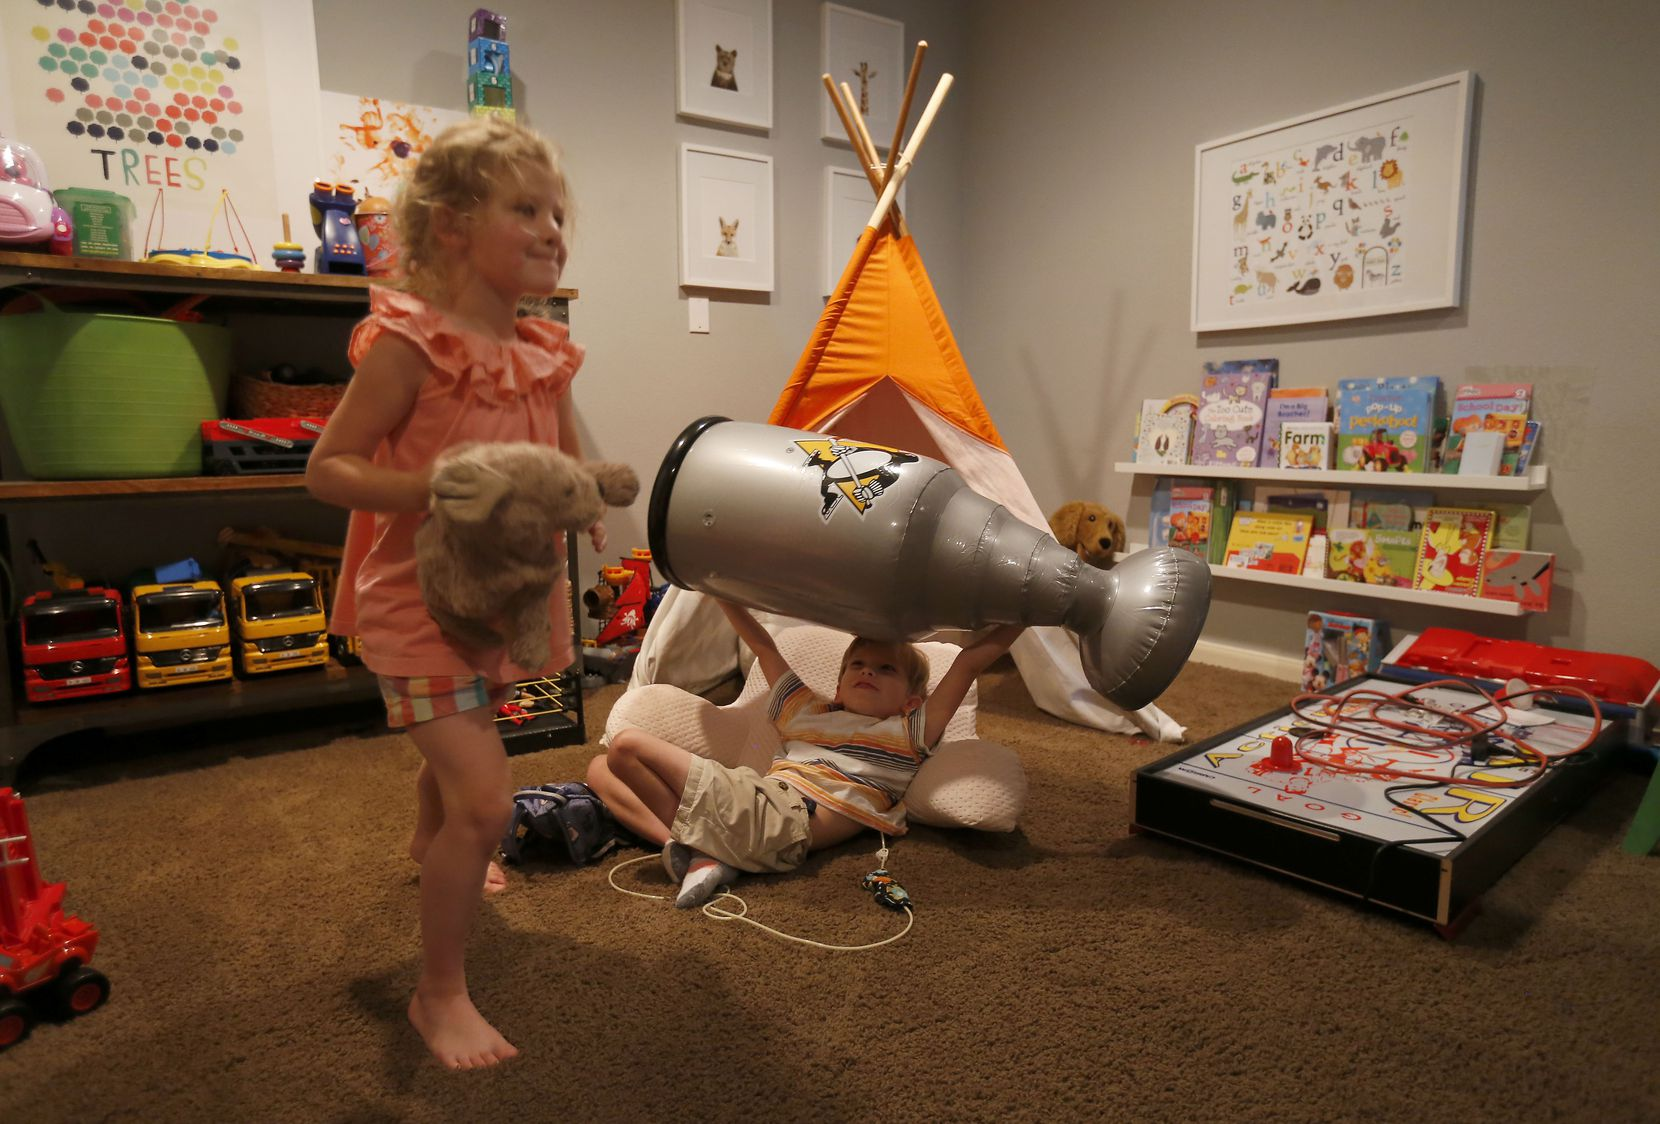 Will plays with his sister, Lauren, in the playroom at their home in McKinney, Texas, on Wednesday, June 20, 2018.